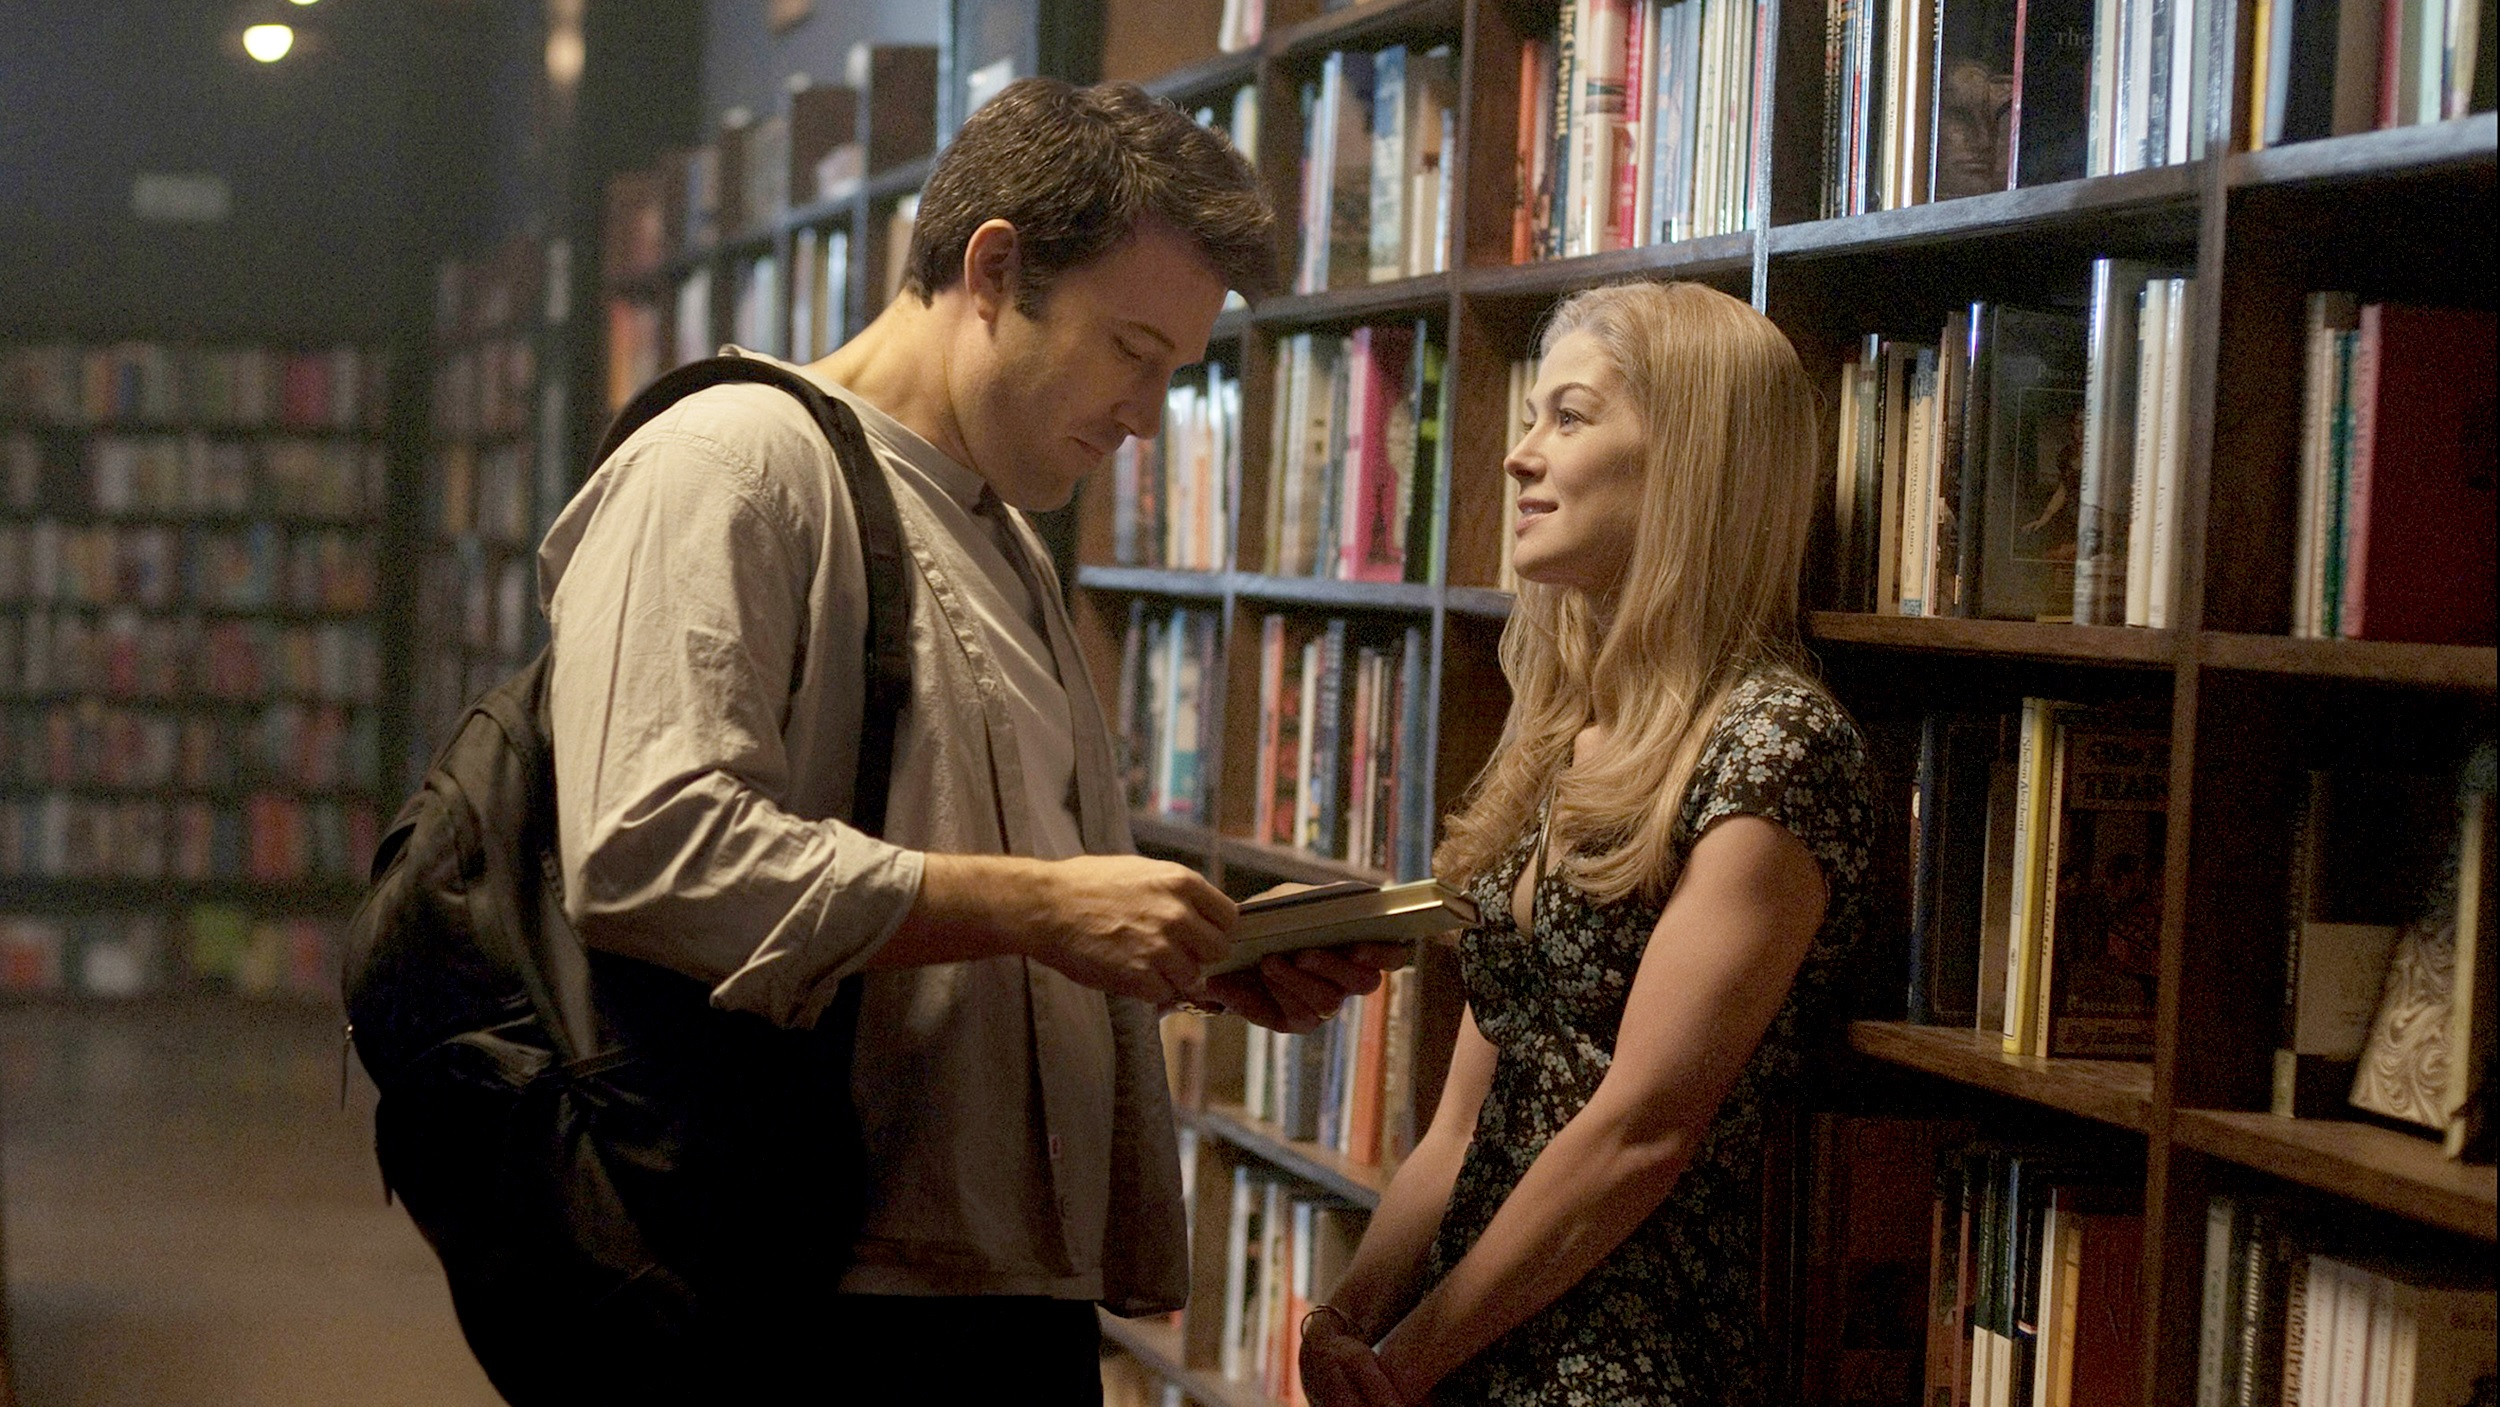 gone girl_library